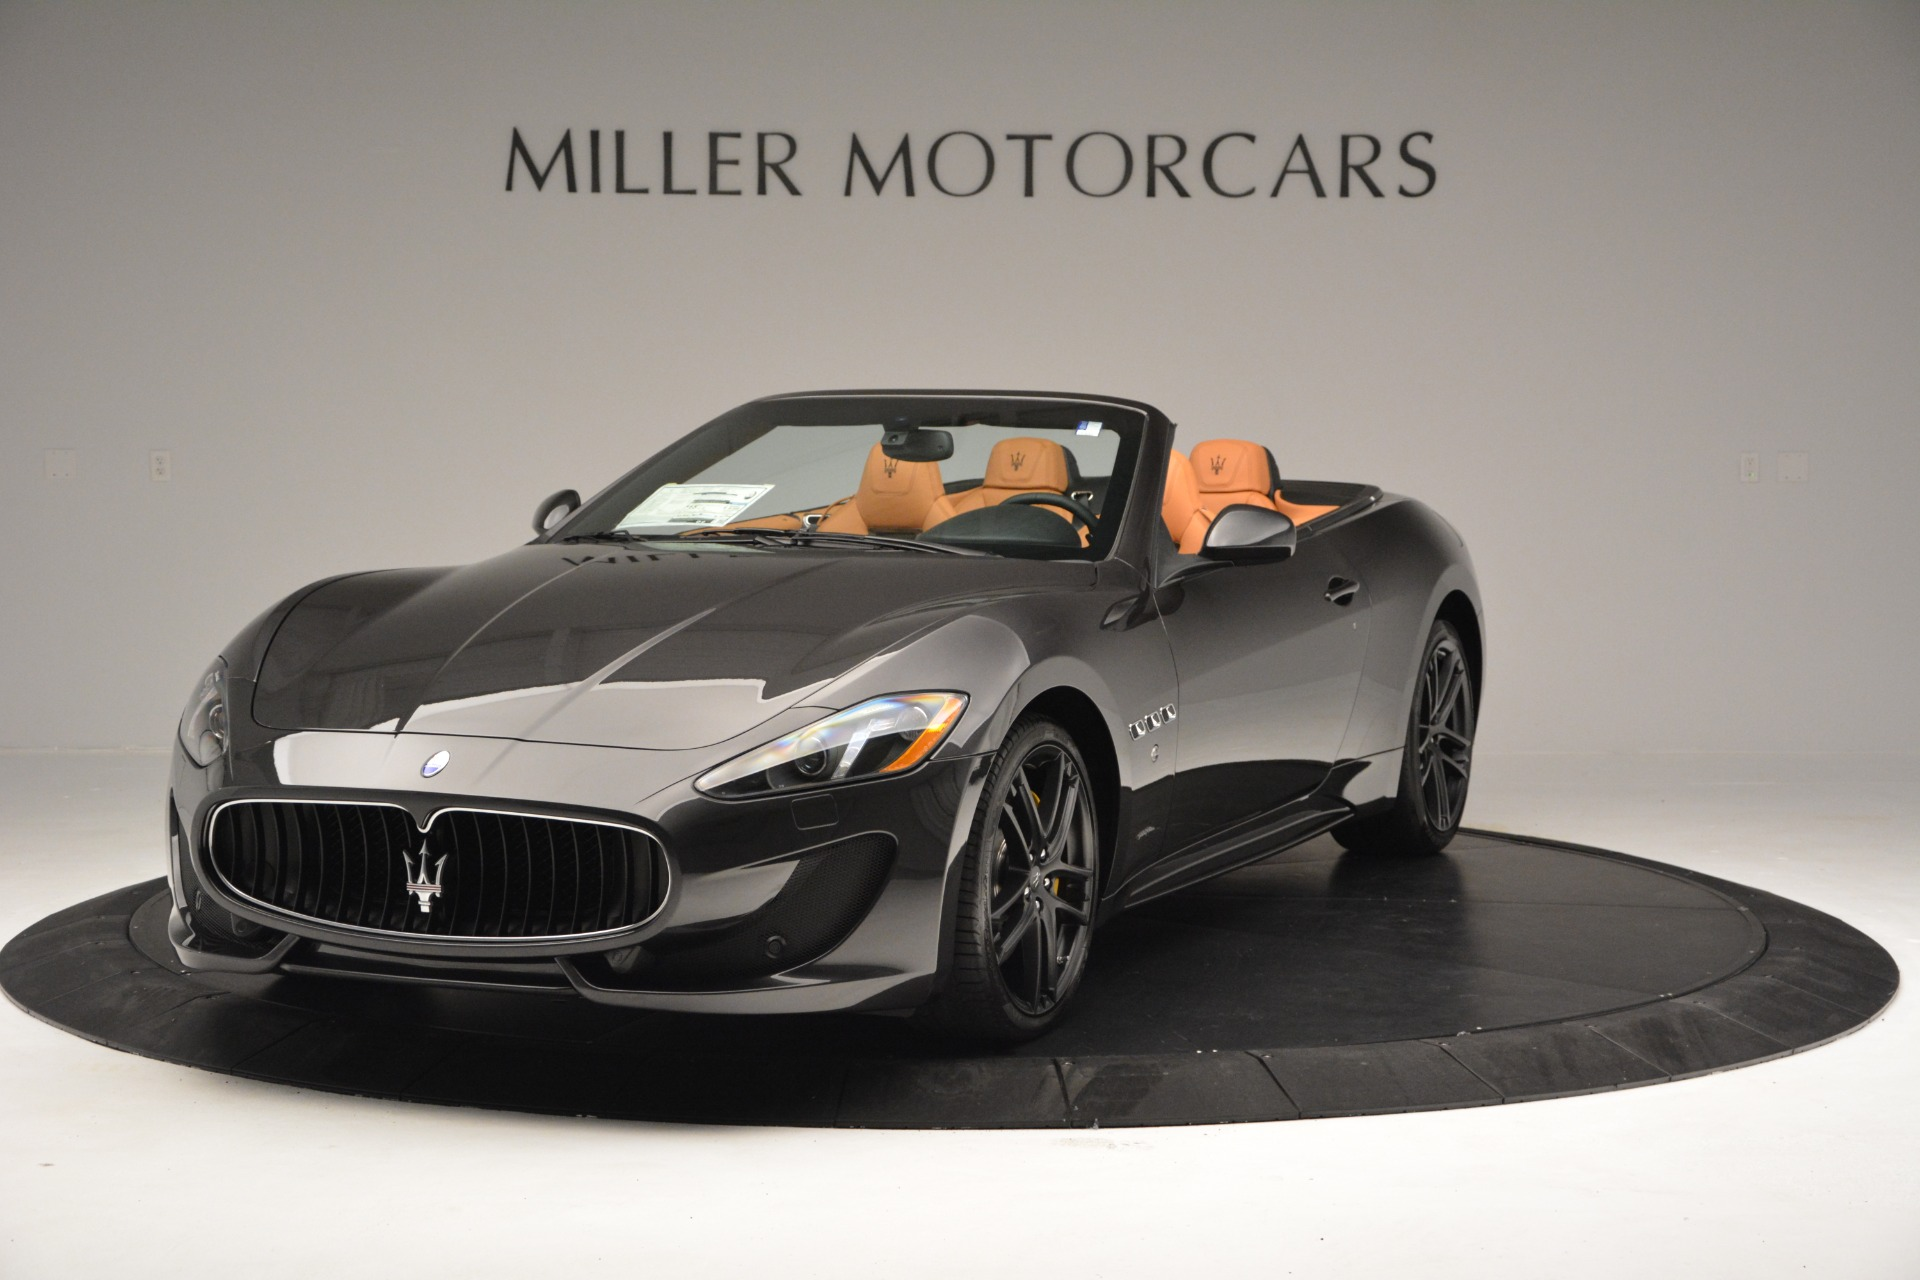 Used 2015 Maserati GranTurismo Sport Convertible for sale Sold at McLaren Greenwich in Greenwich CT 06830 1